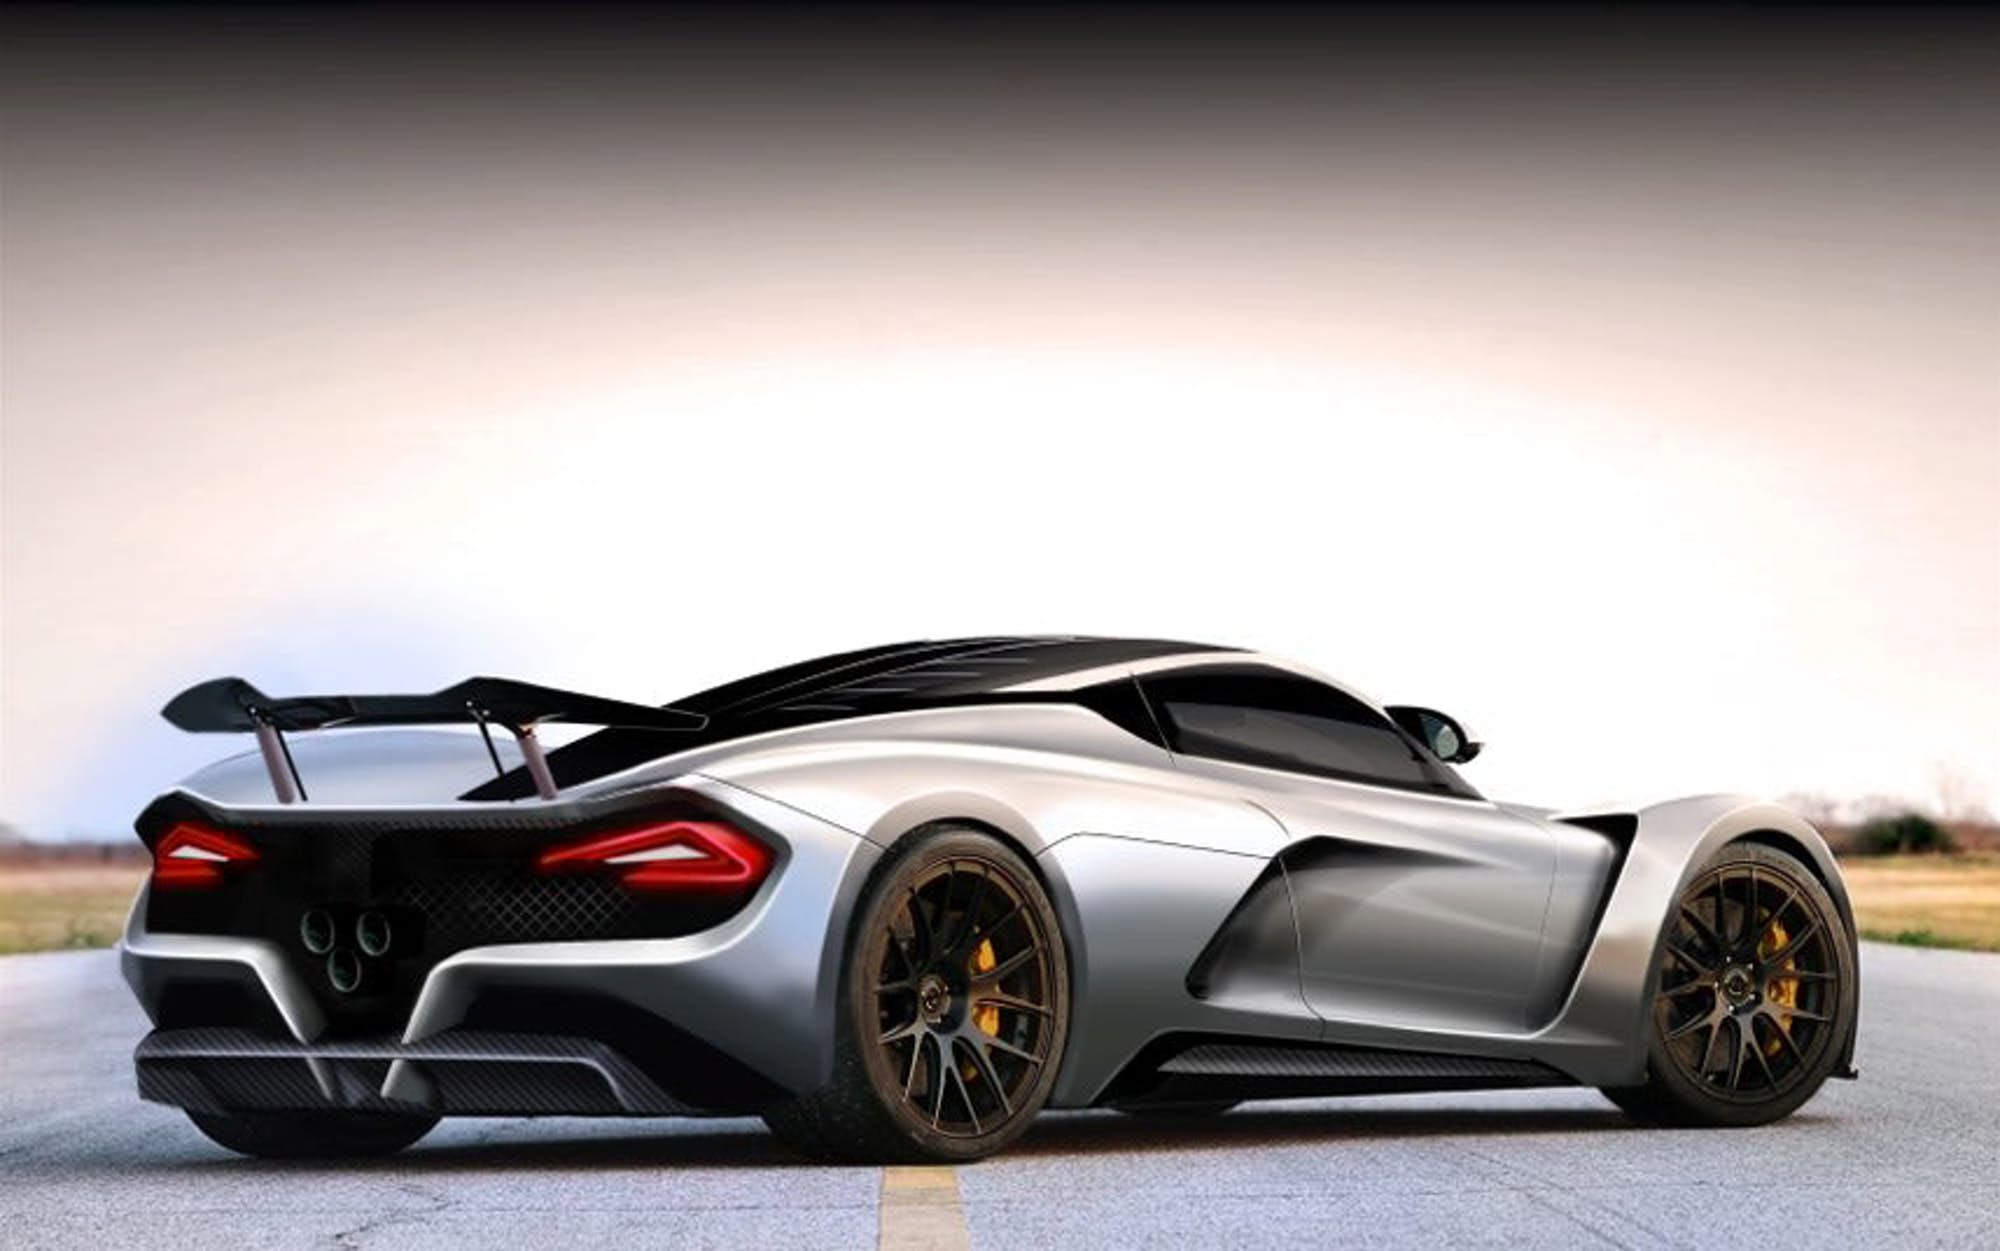 Hennessey Hints At 300 Mph With New Teaser For Venom F5 Supercar Hennessey Venom Gt Super Cars Hennessey